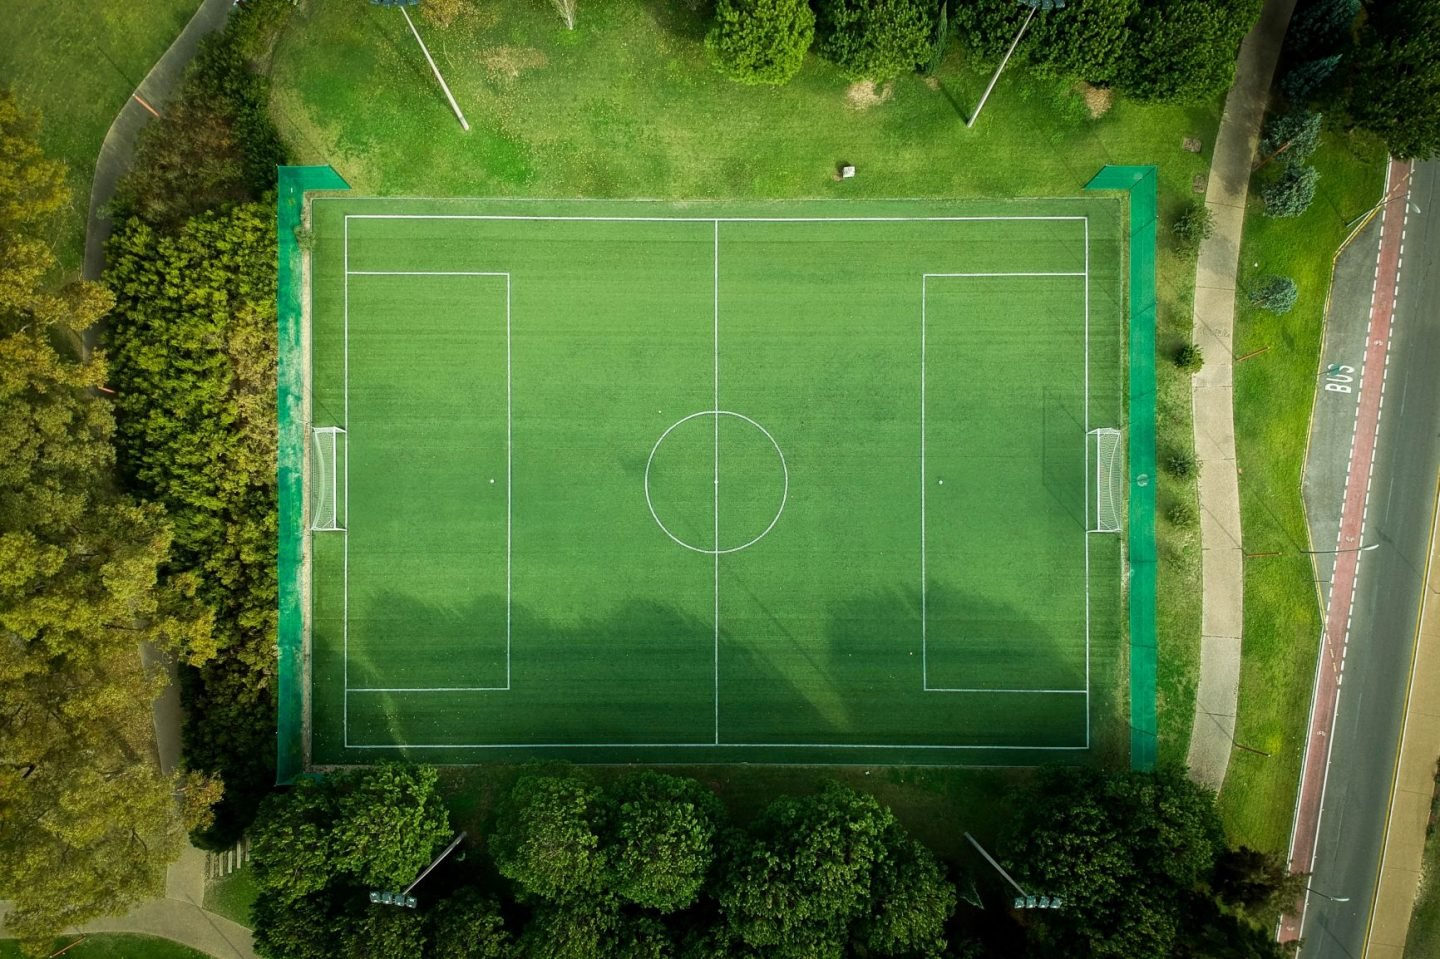 Trivia questions to ask about soccer